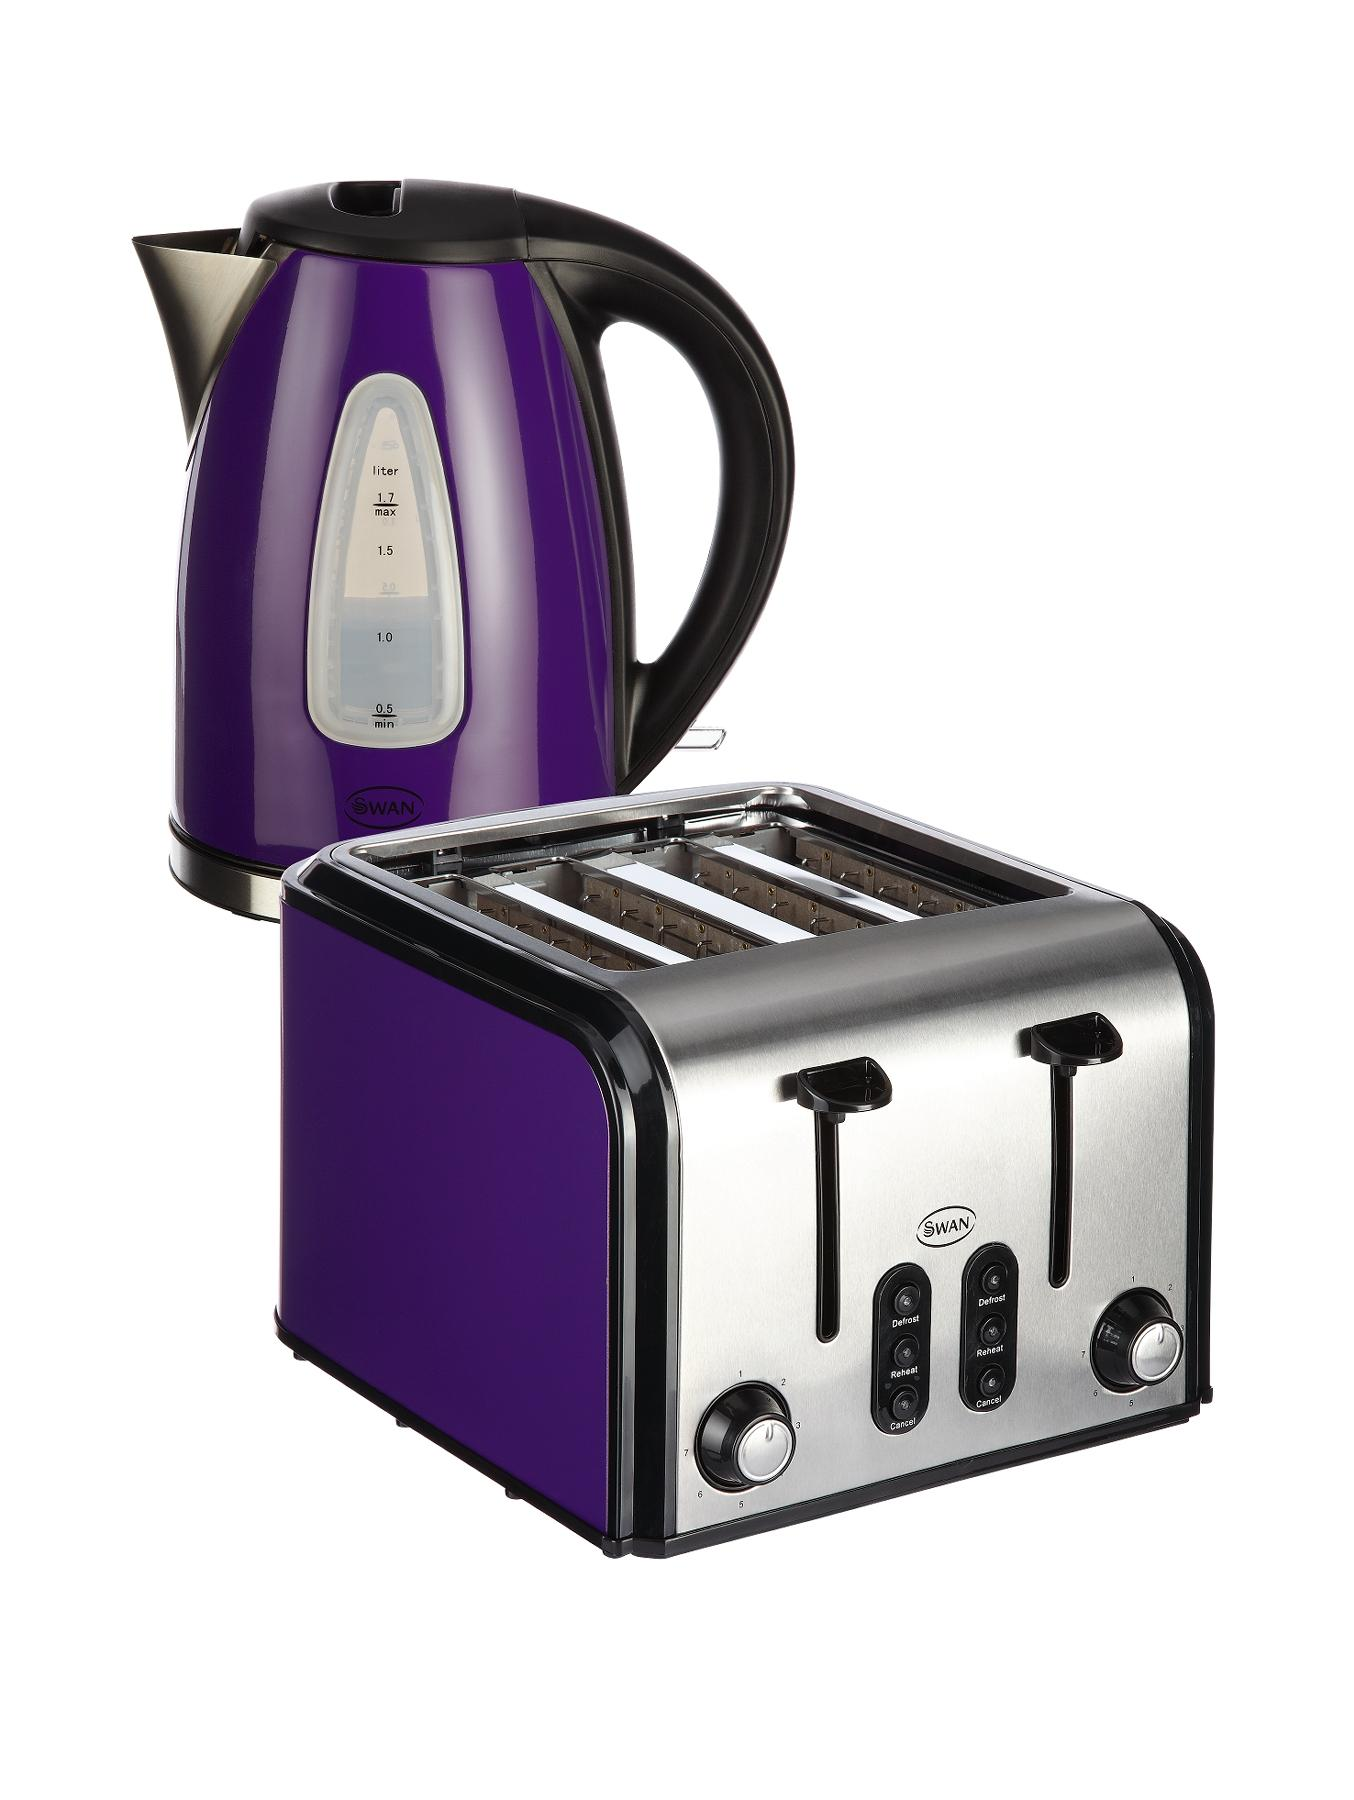 SK13110PU/ST70100PU Fastboil Kettle and 4-Slice Toaster Pack - Purple